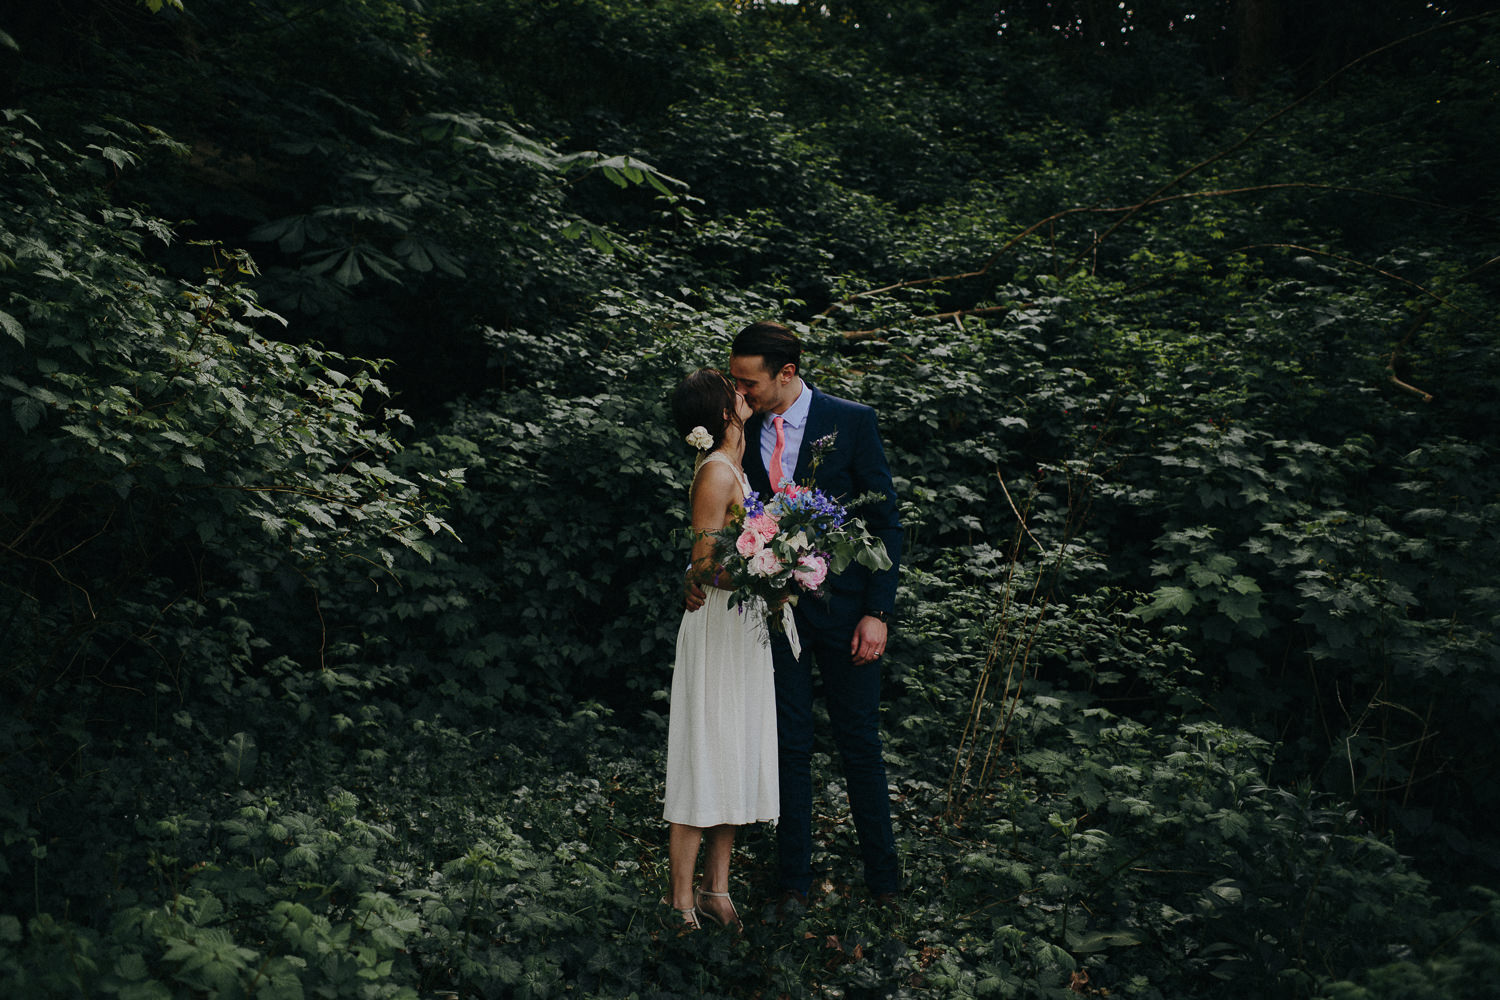 beautiful bride and groom surrounded by green